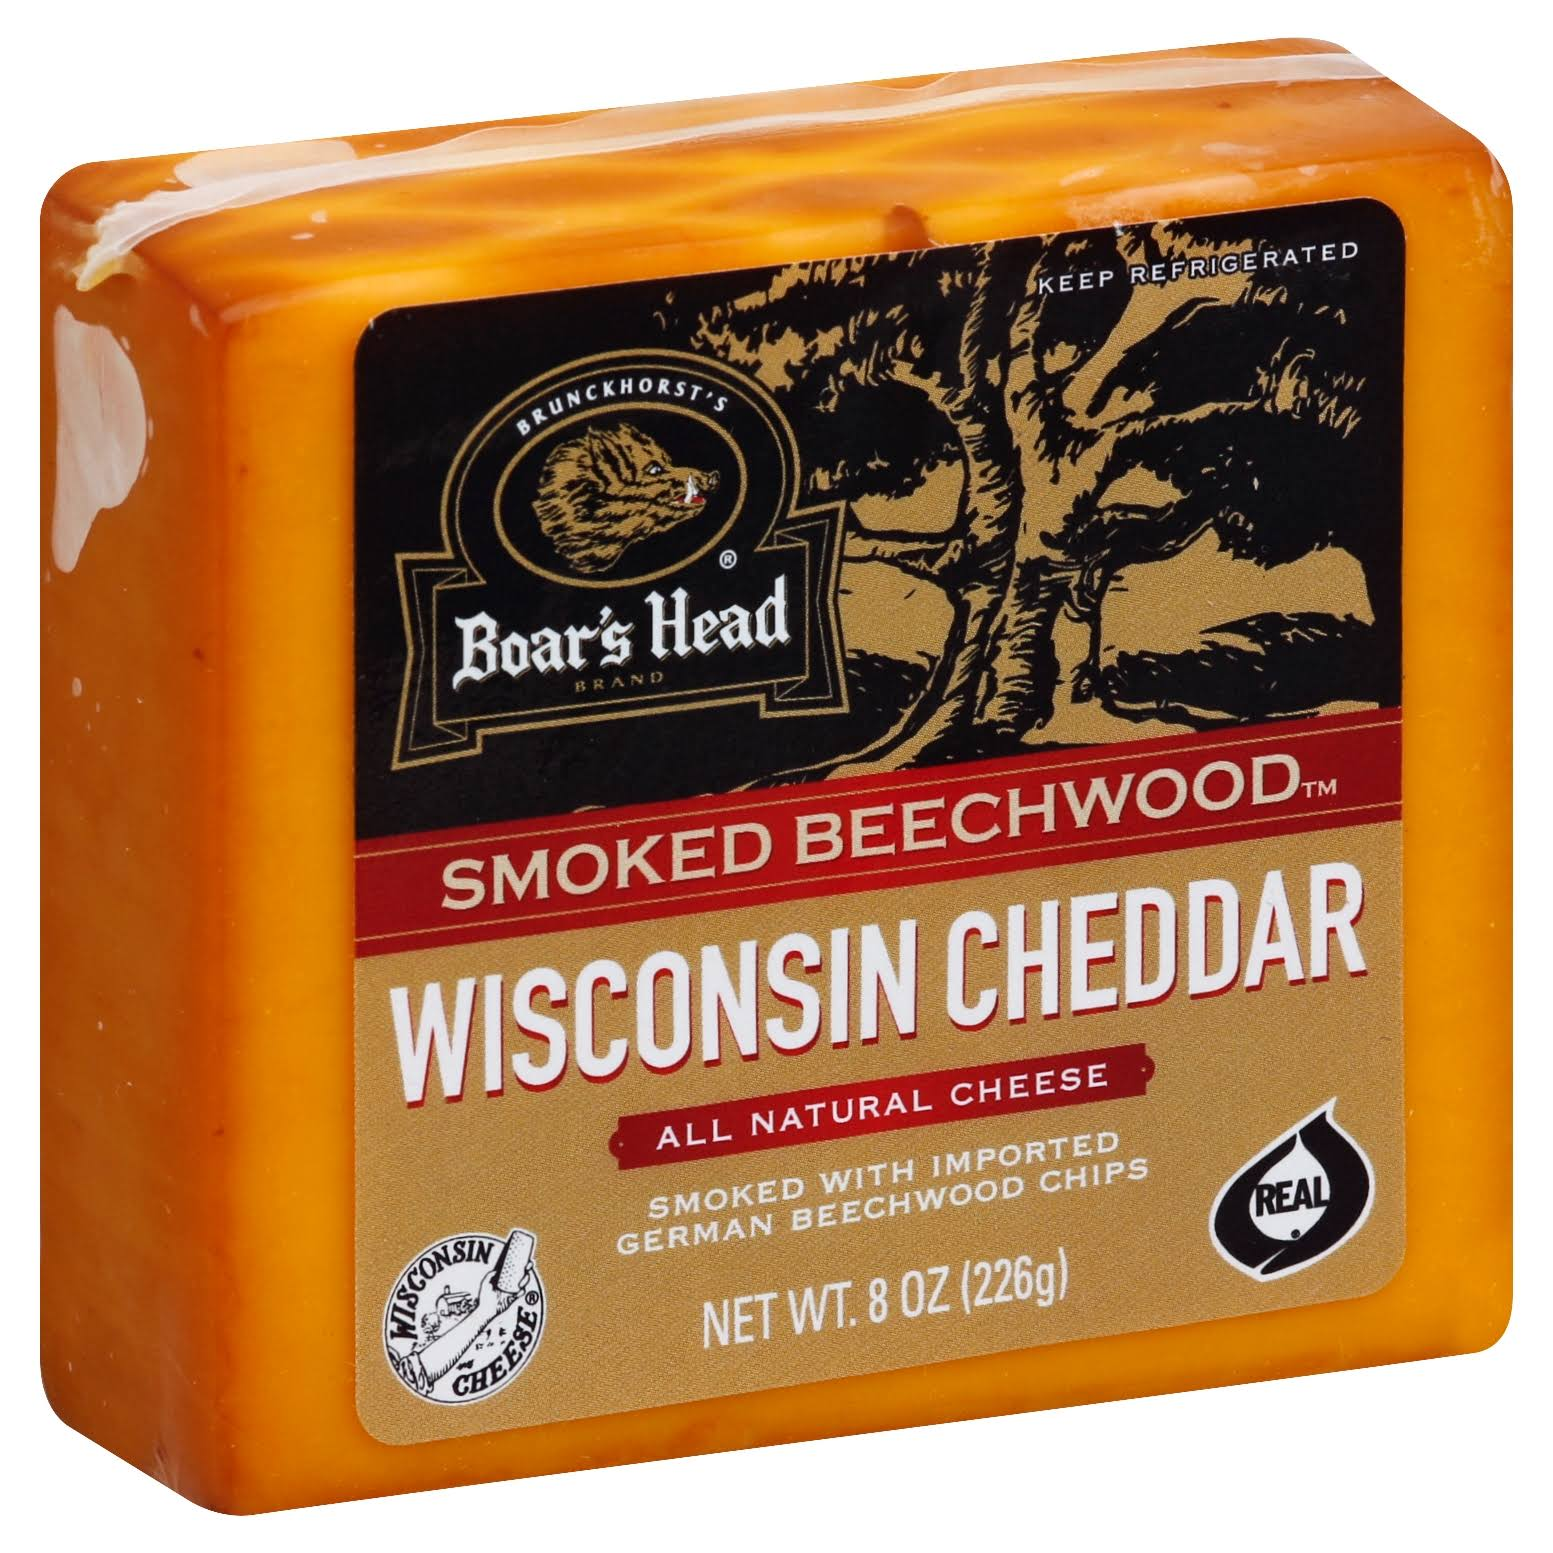 Boars Head Cheese, Wisconsin Cheddar, Smoked Beechwood - 8 oz